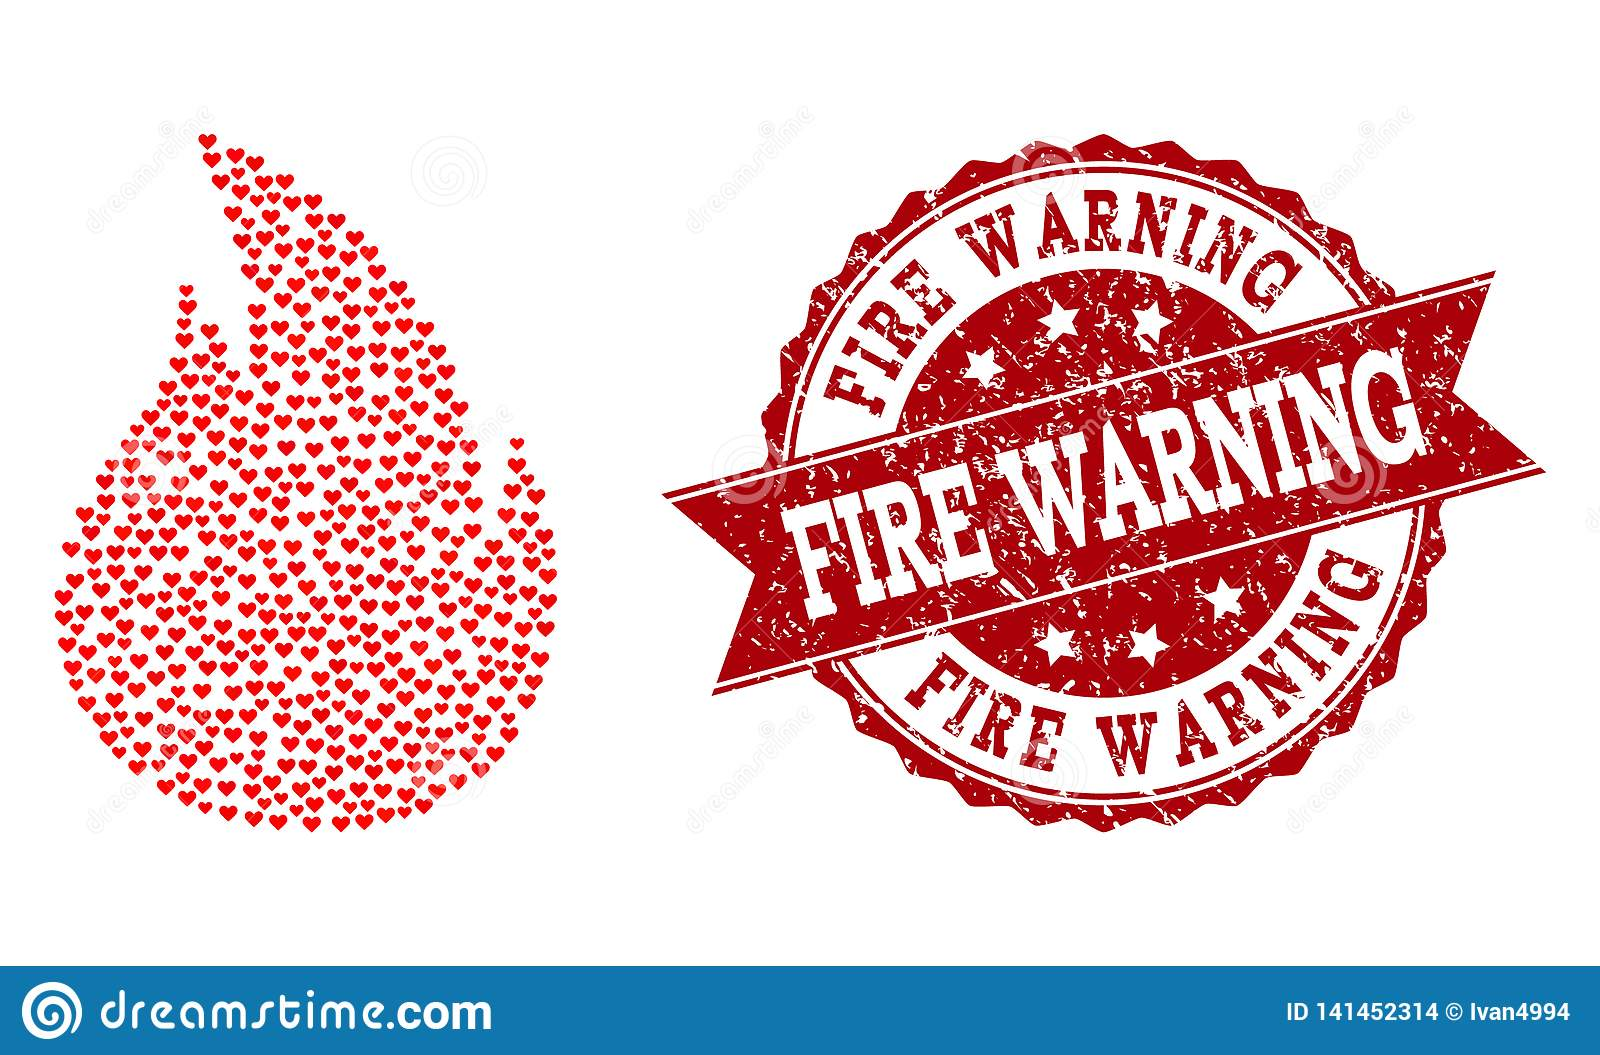 Valentine Heart Composition of Fire Icon and Grunge Watermark